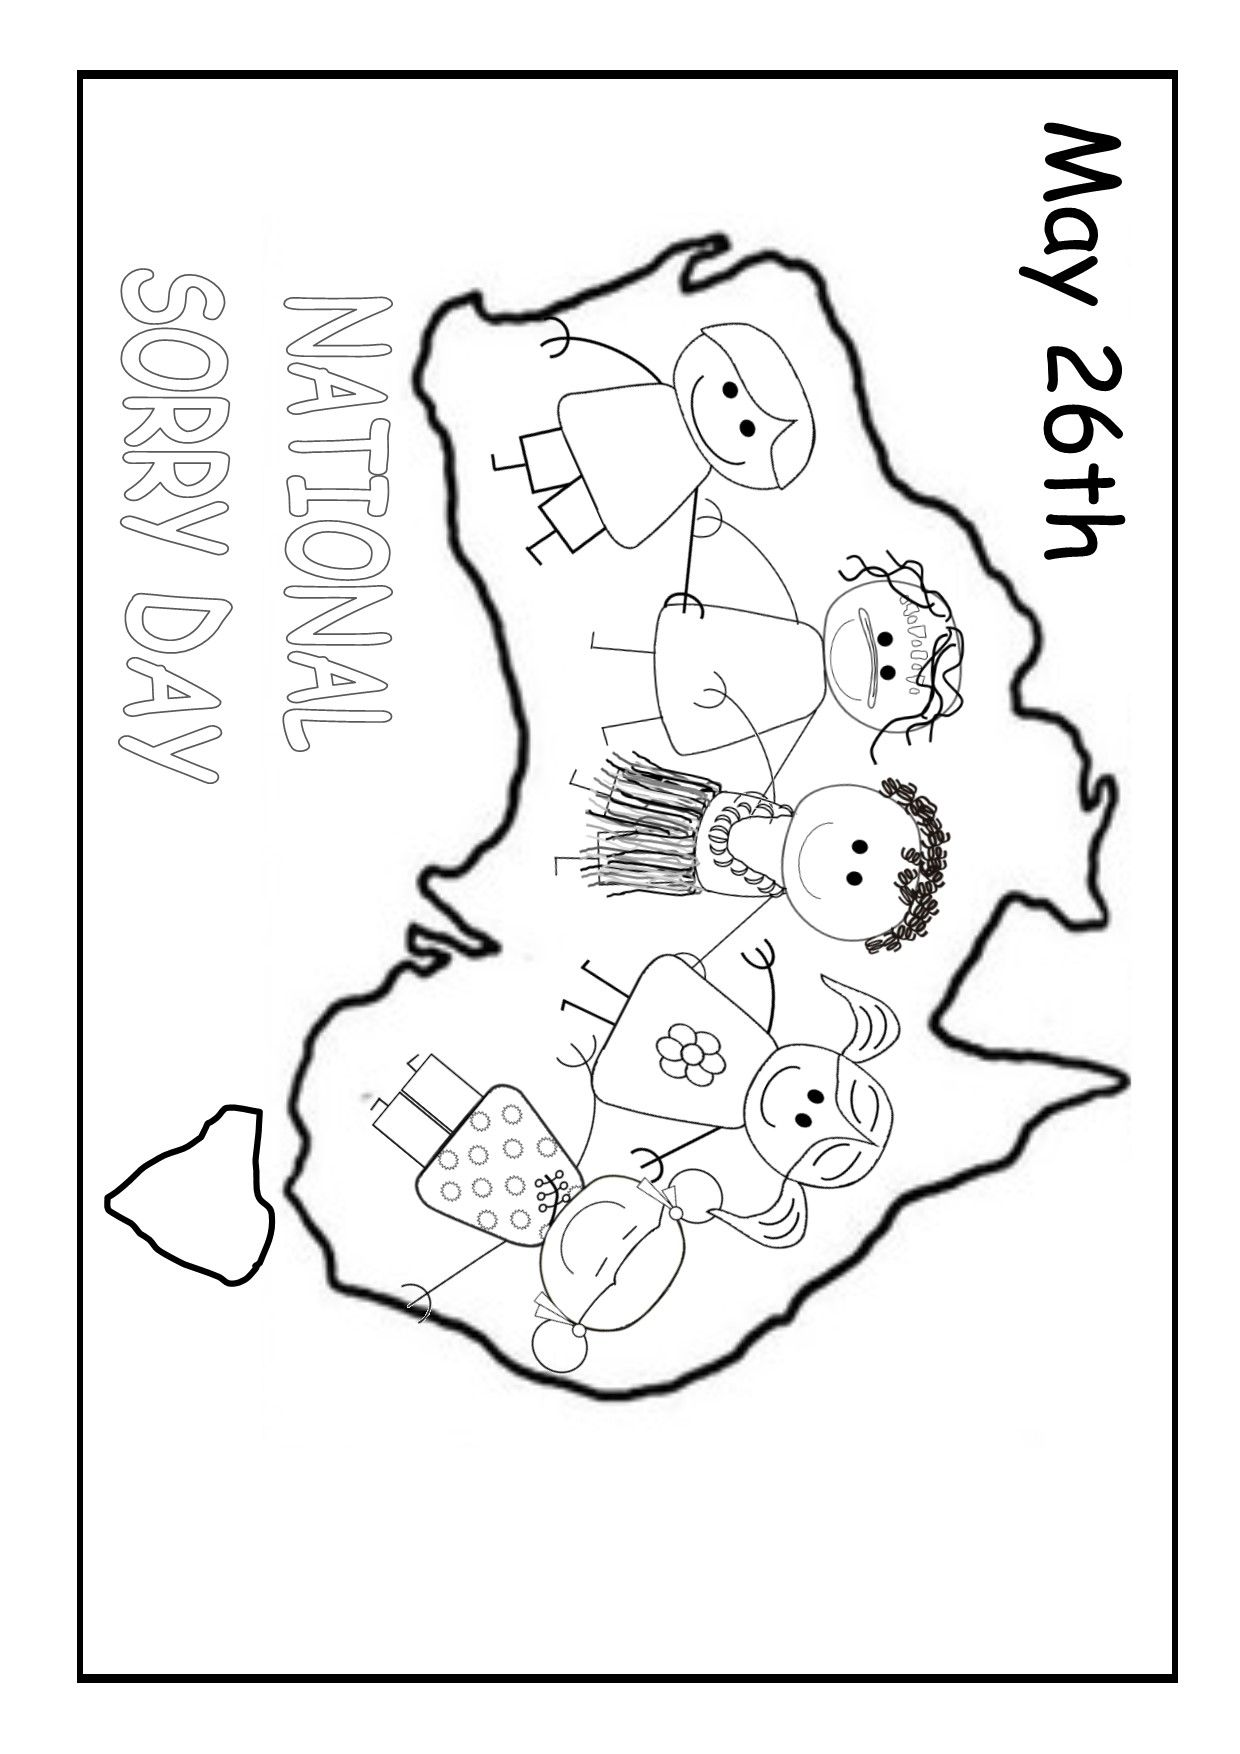 National Sorry Day Australia. Colouring printable